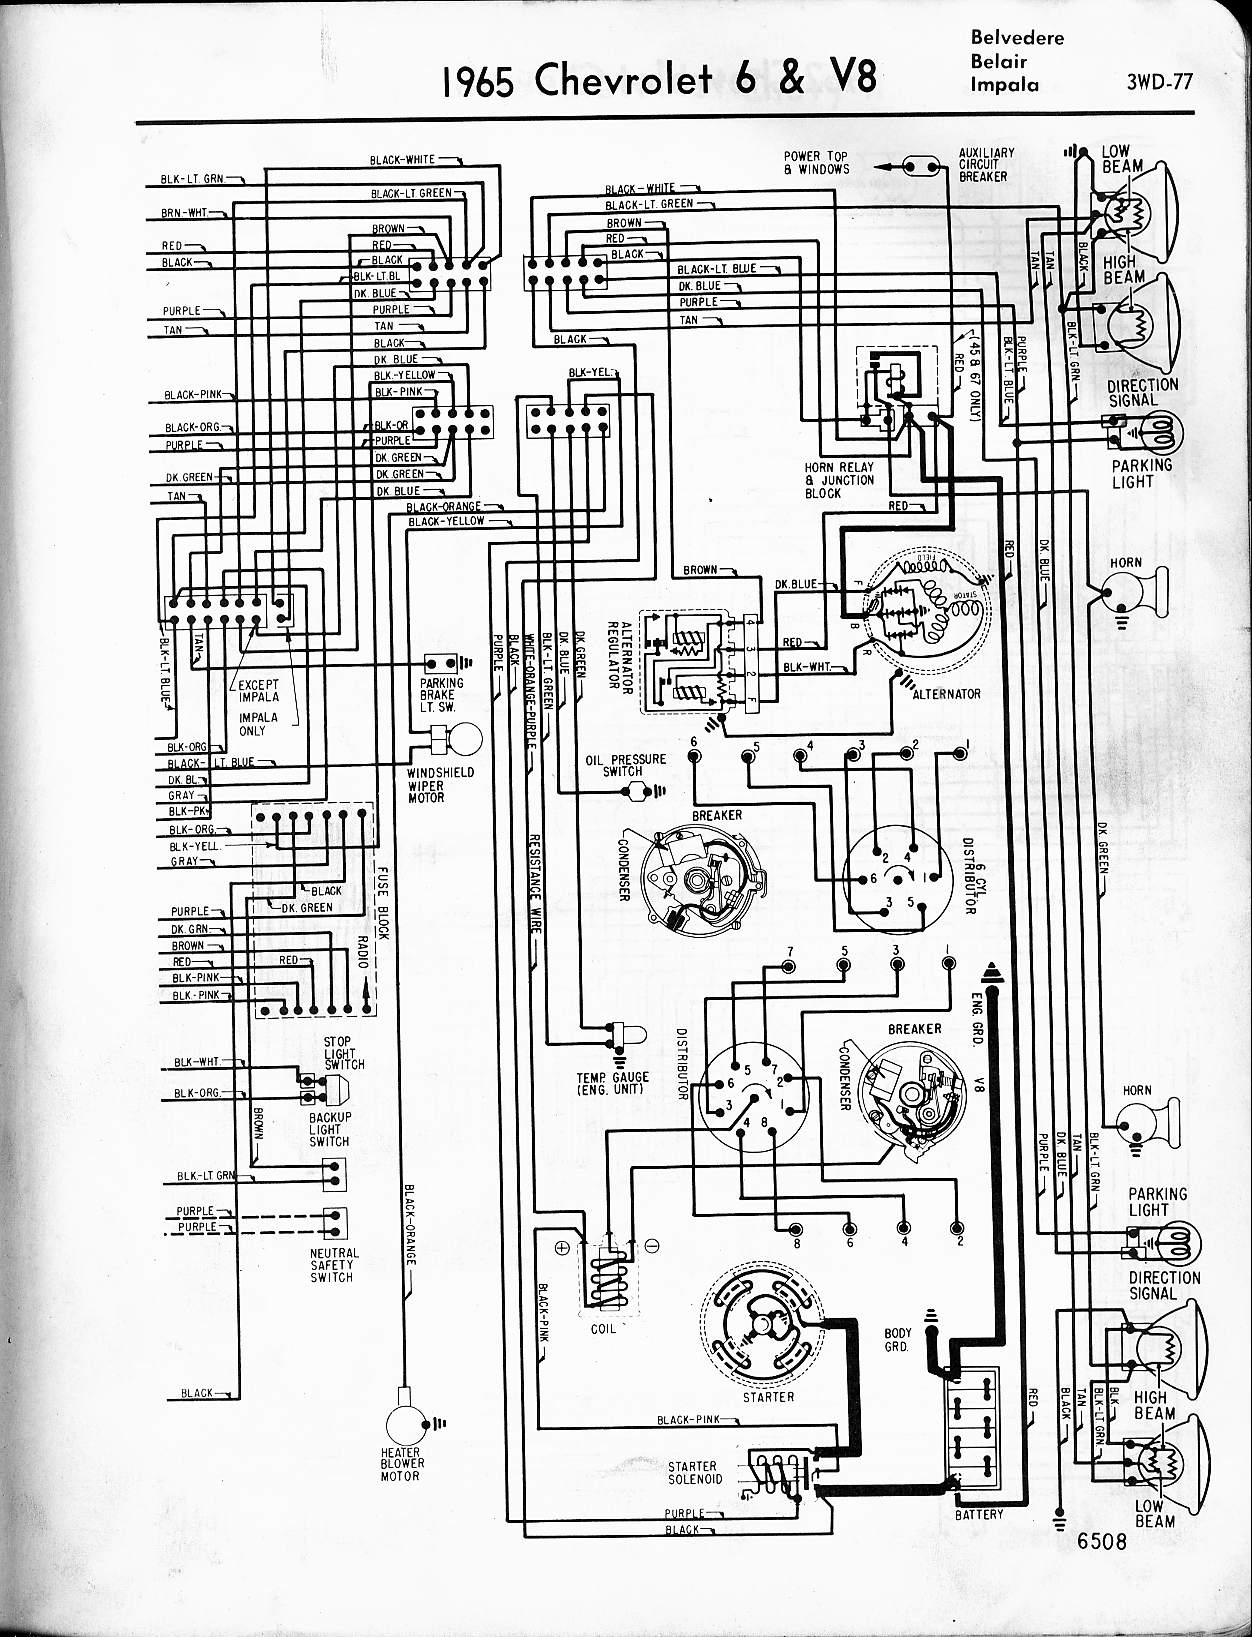 MWireChev65_3WD 077 chevy diagrams 1965 chevy nova wiring diagram at webbmarketing.co